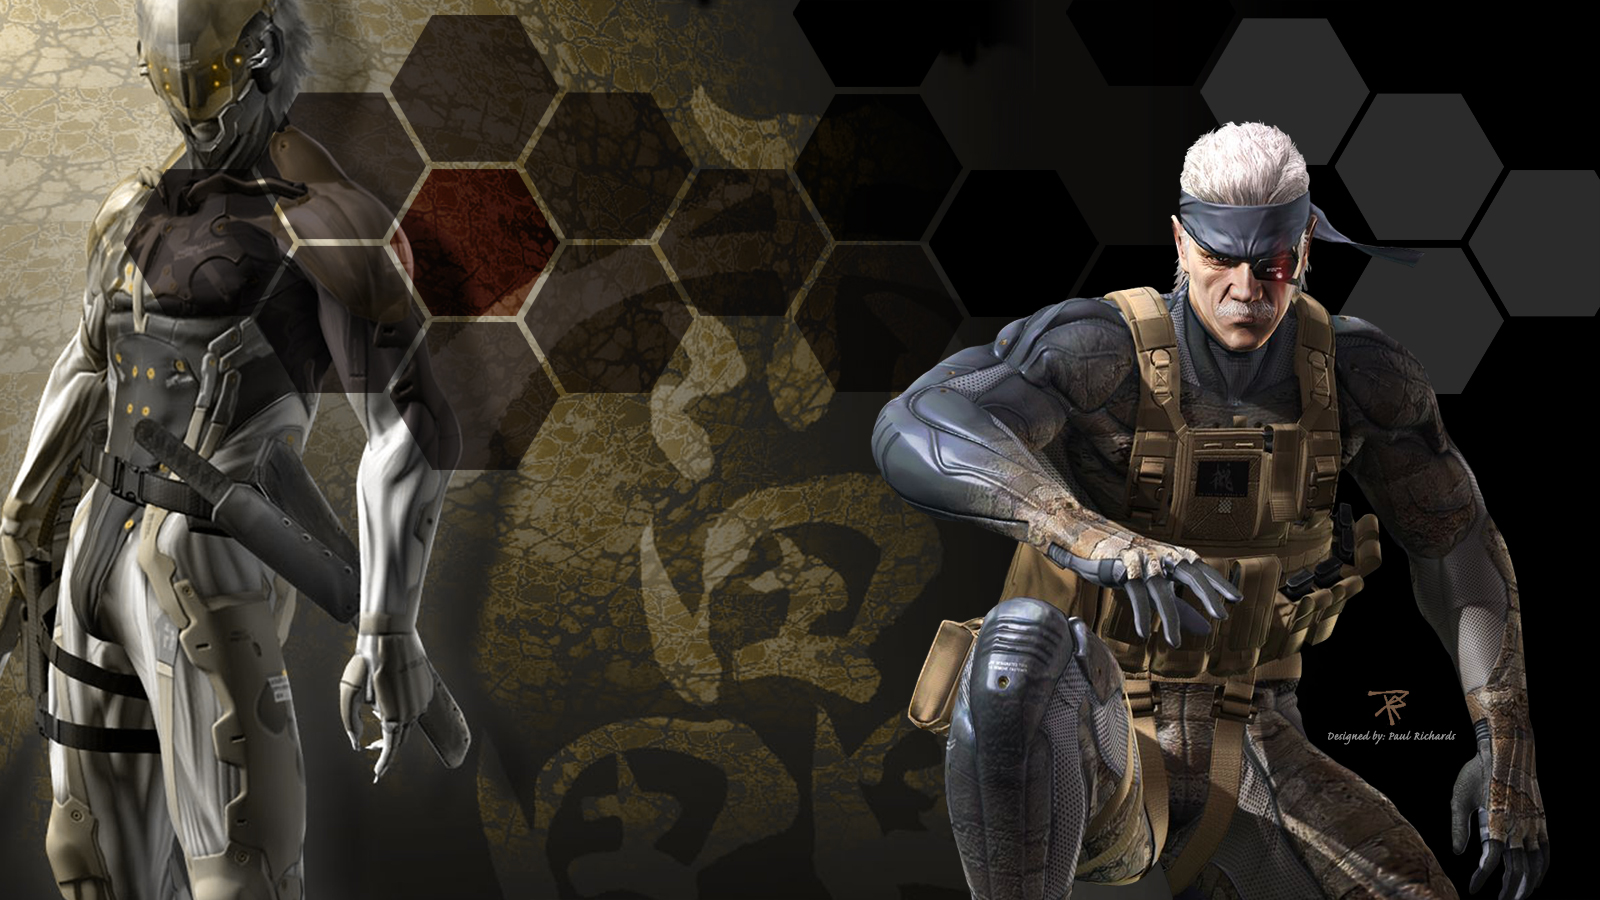 Free Download Metal Gear Solid 4 Wallpapers 1600x900 For Your